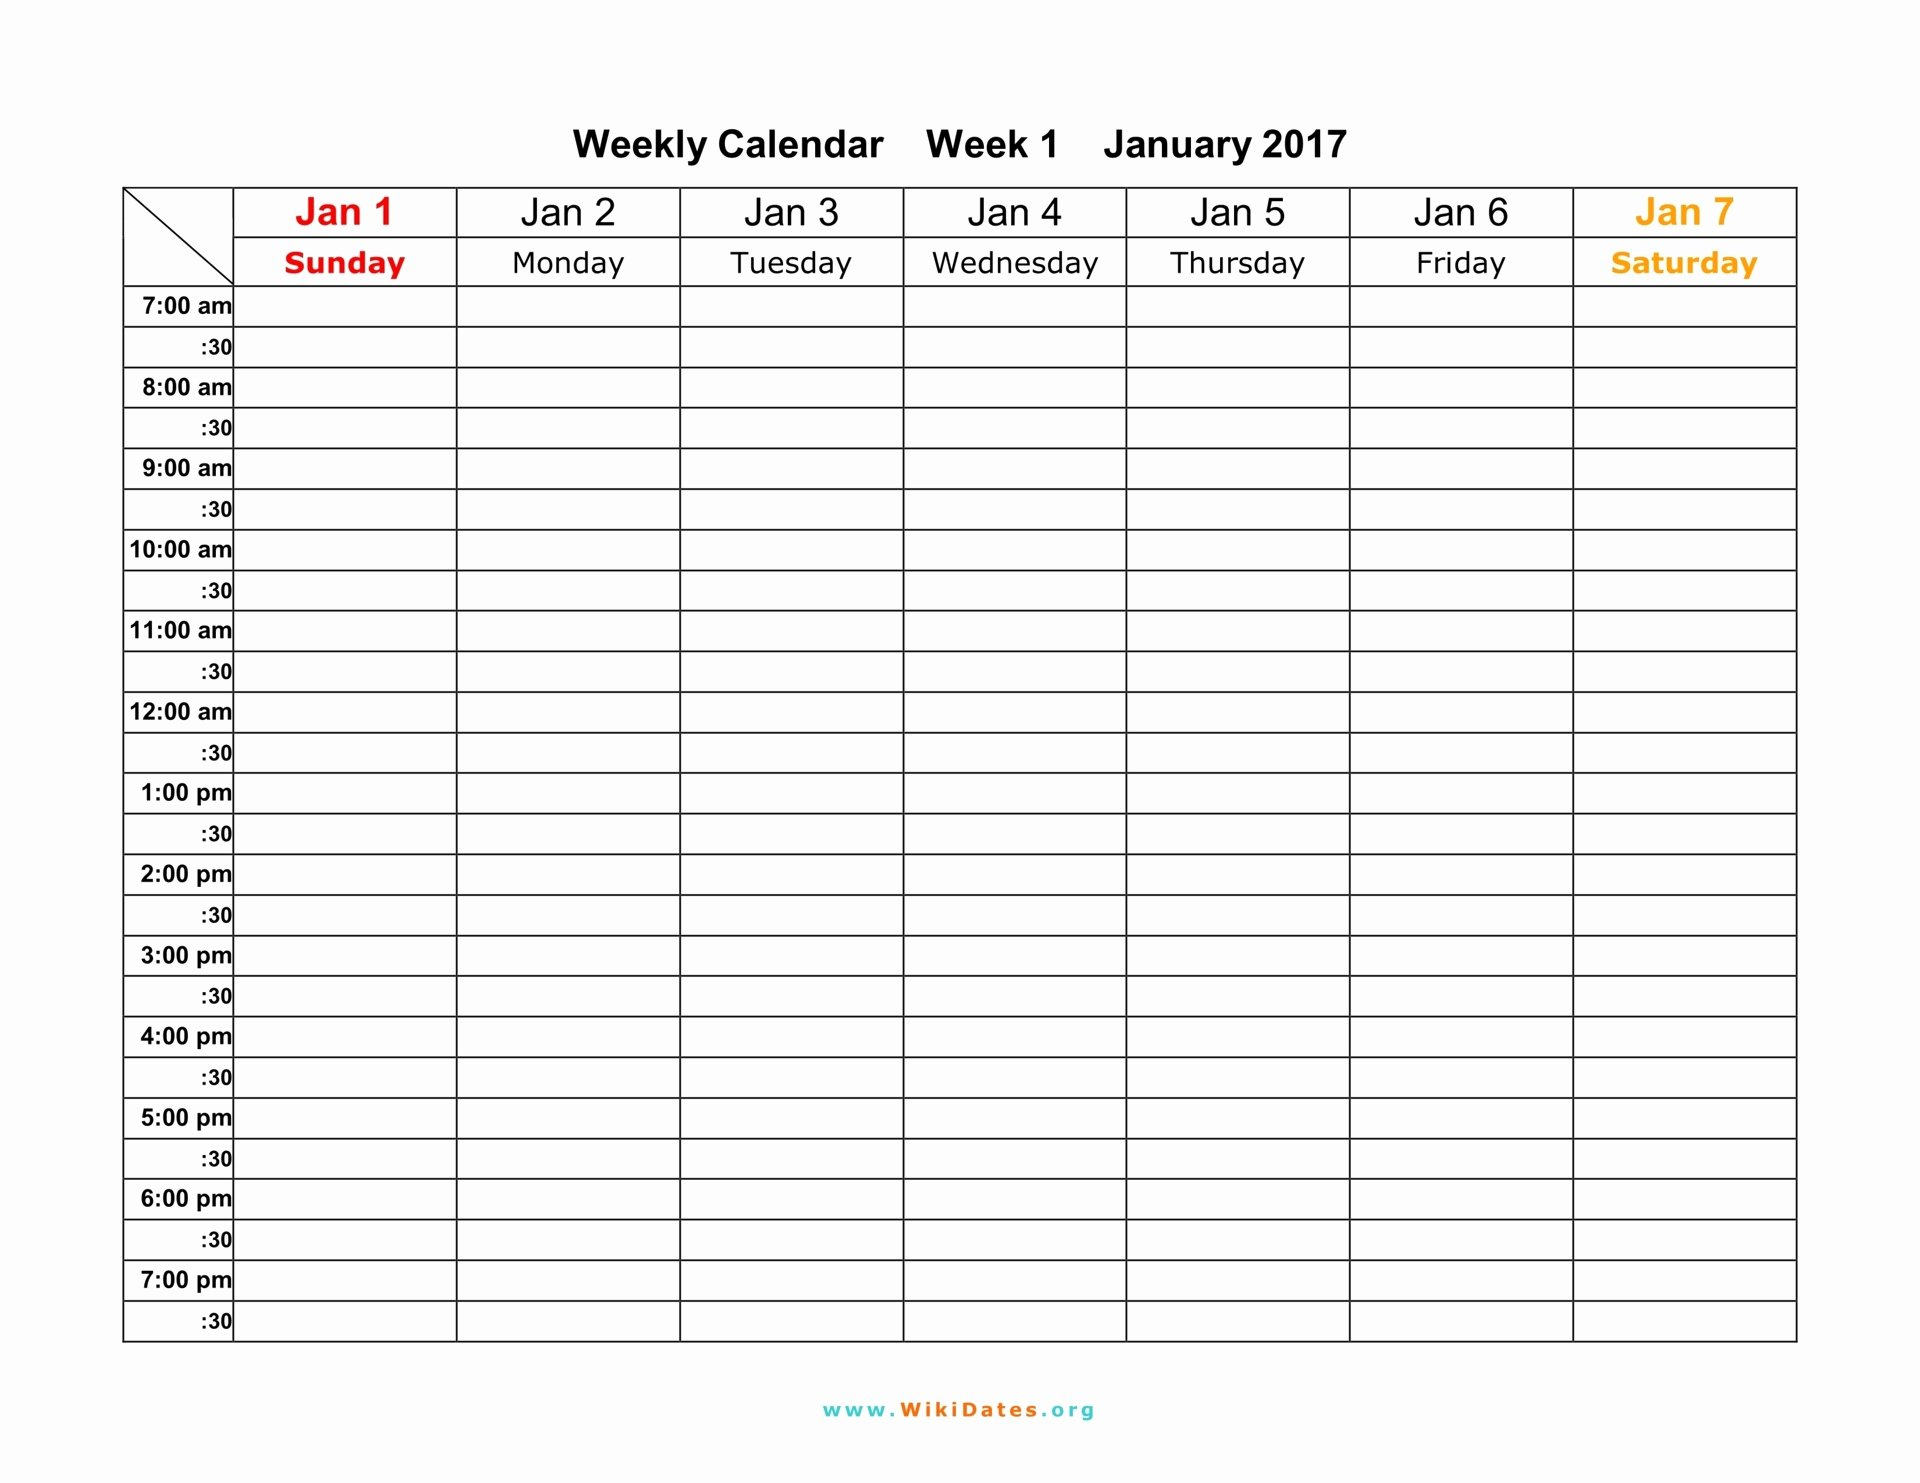 Free Weekly Printable Calendar Lovely Weekly Calendar Download Weekly Calendar 2017 and 2018